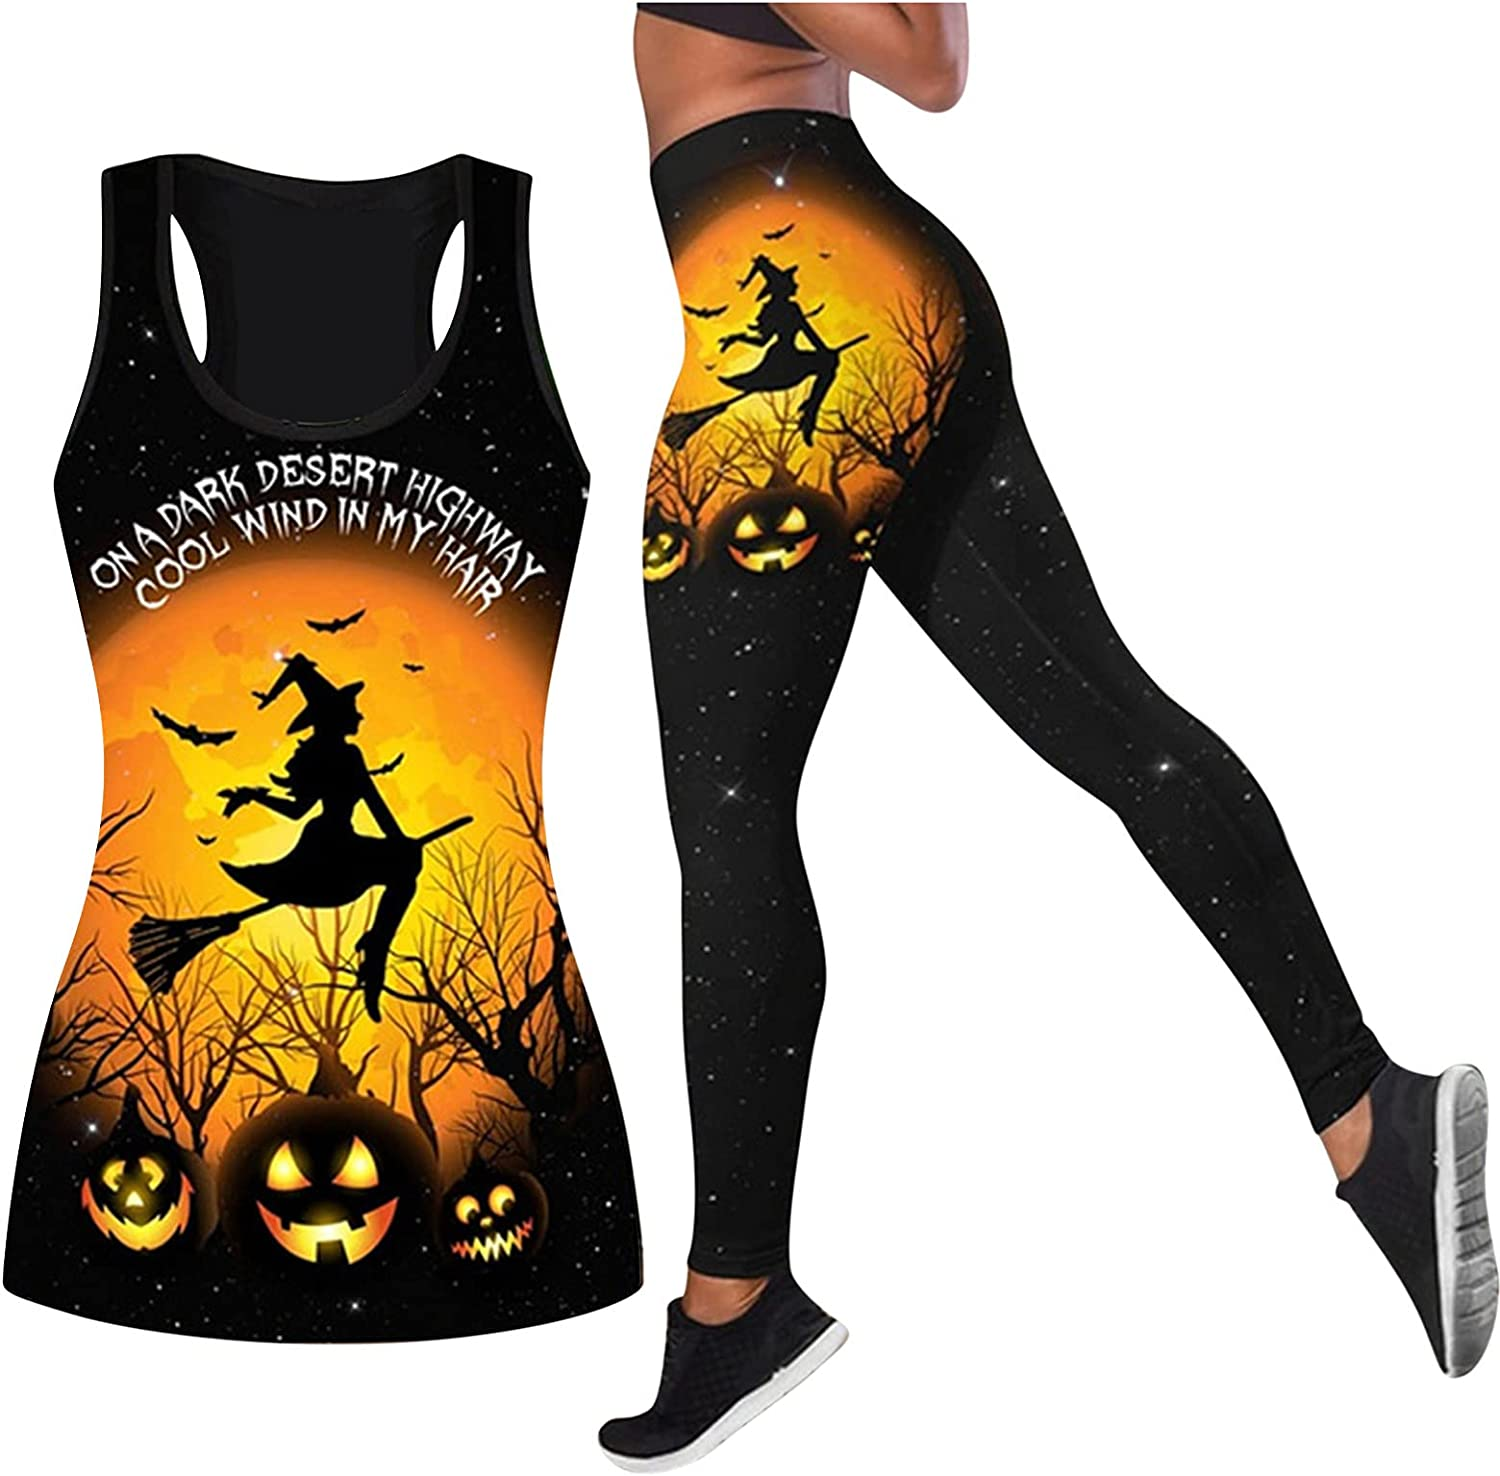 Halloween Womens 2 Pcs Set On A Dark Desert Highway Witch Tank Top You Just Flipped My Witch Switch T Shirt + Pants